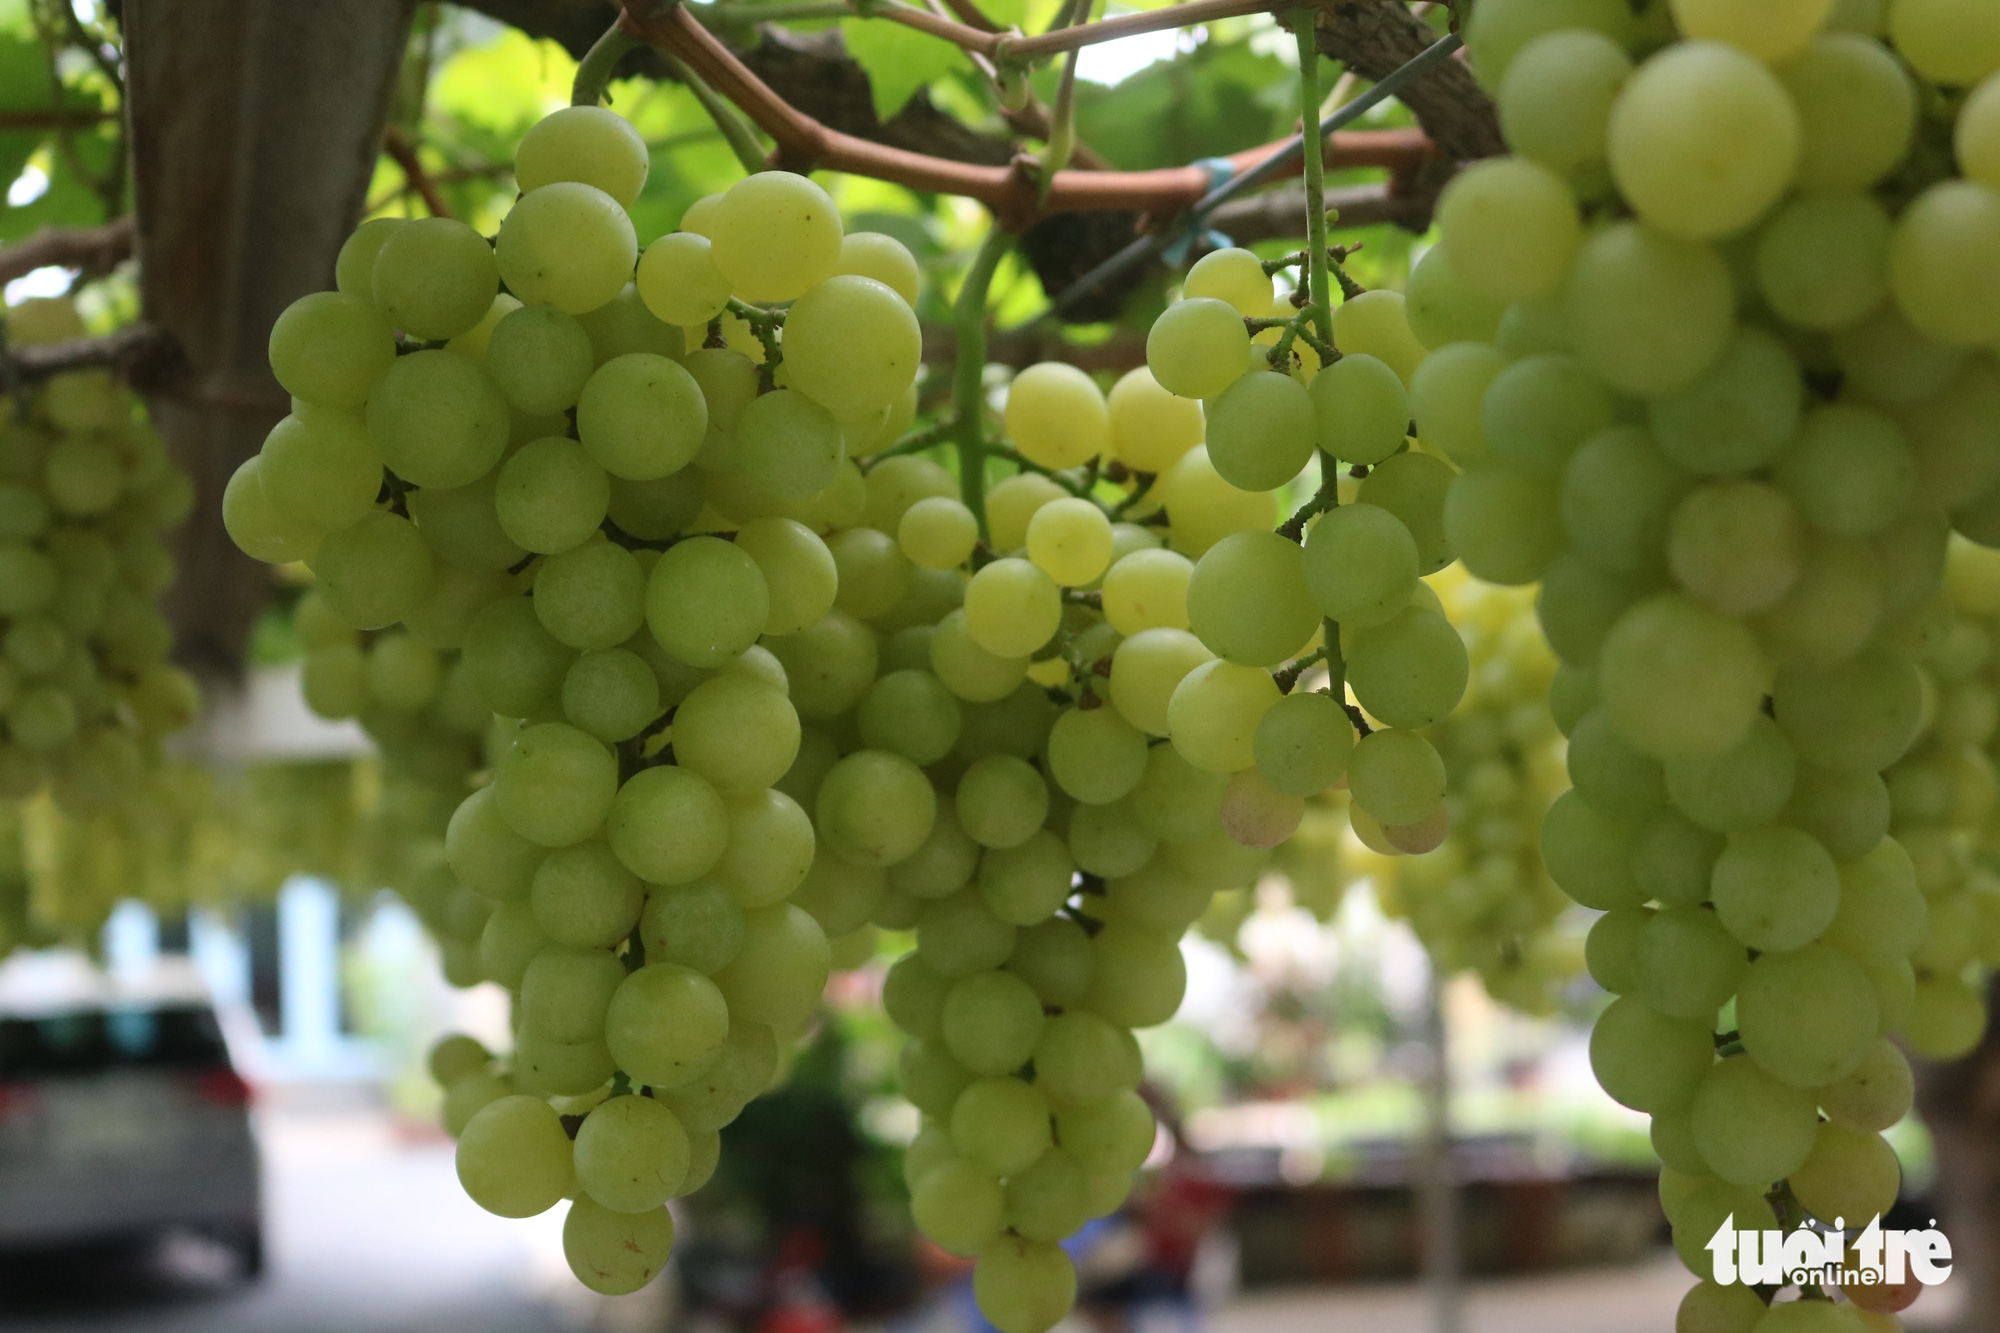 Bunches of green grapes hang from grapevines grown at Truong Van O's home garden in District 9, Ho Chi Minh City, Vietnam. Photo: Thu Hien / Tuoi Tre